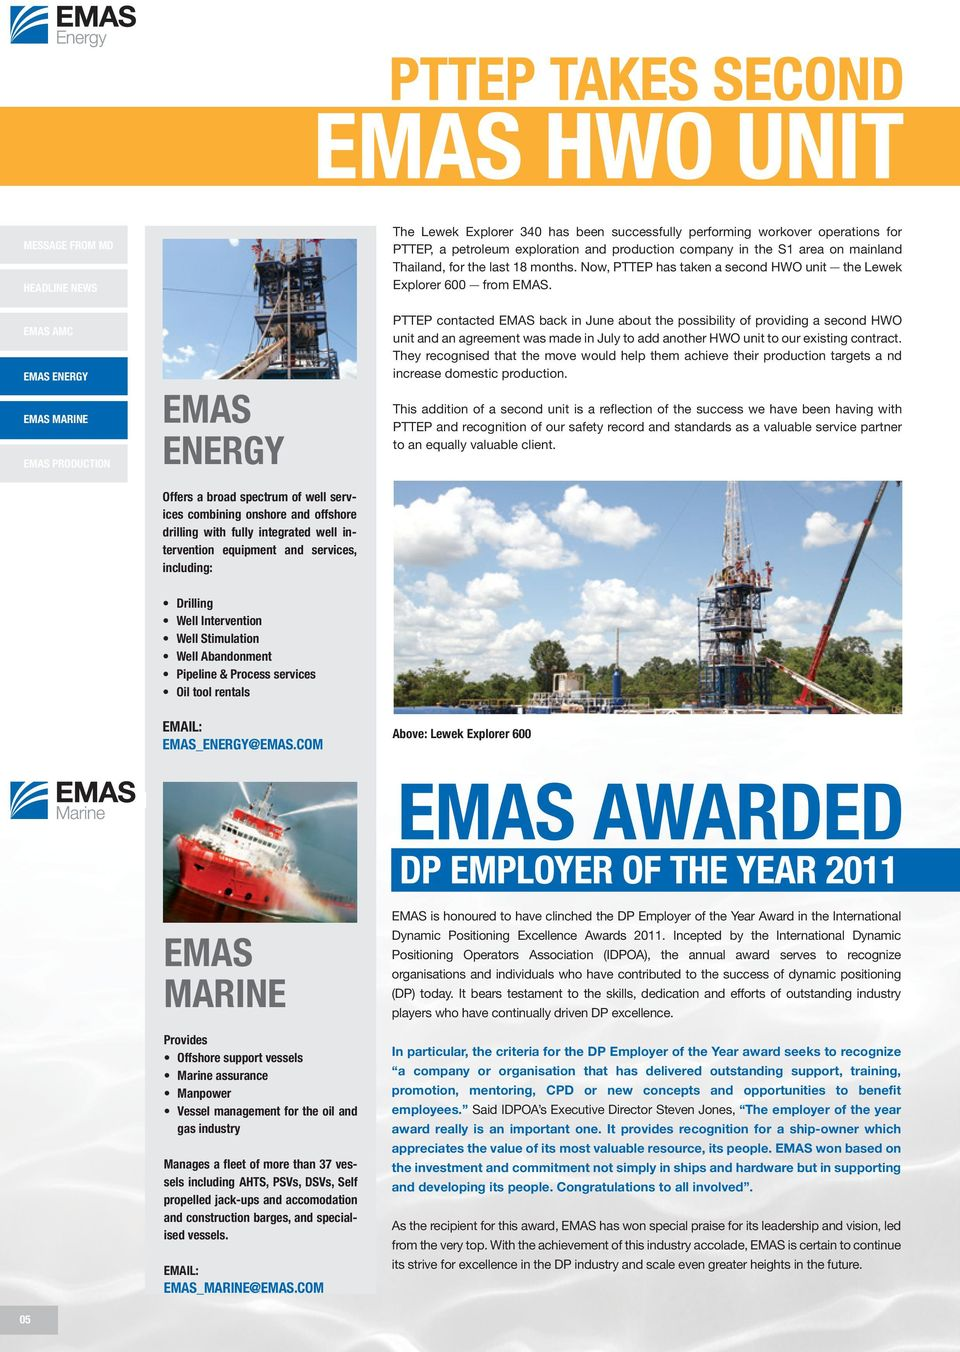 EMAS ENERGY PTTEP contacted EMAS back in June about the possibility of providing a second HWO unit and an agreement was made in July to add another HWO unit to our existing contract.